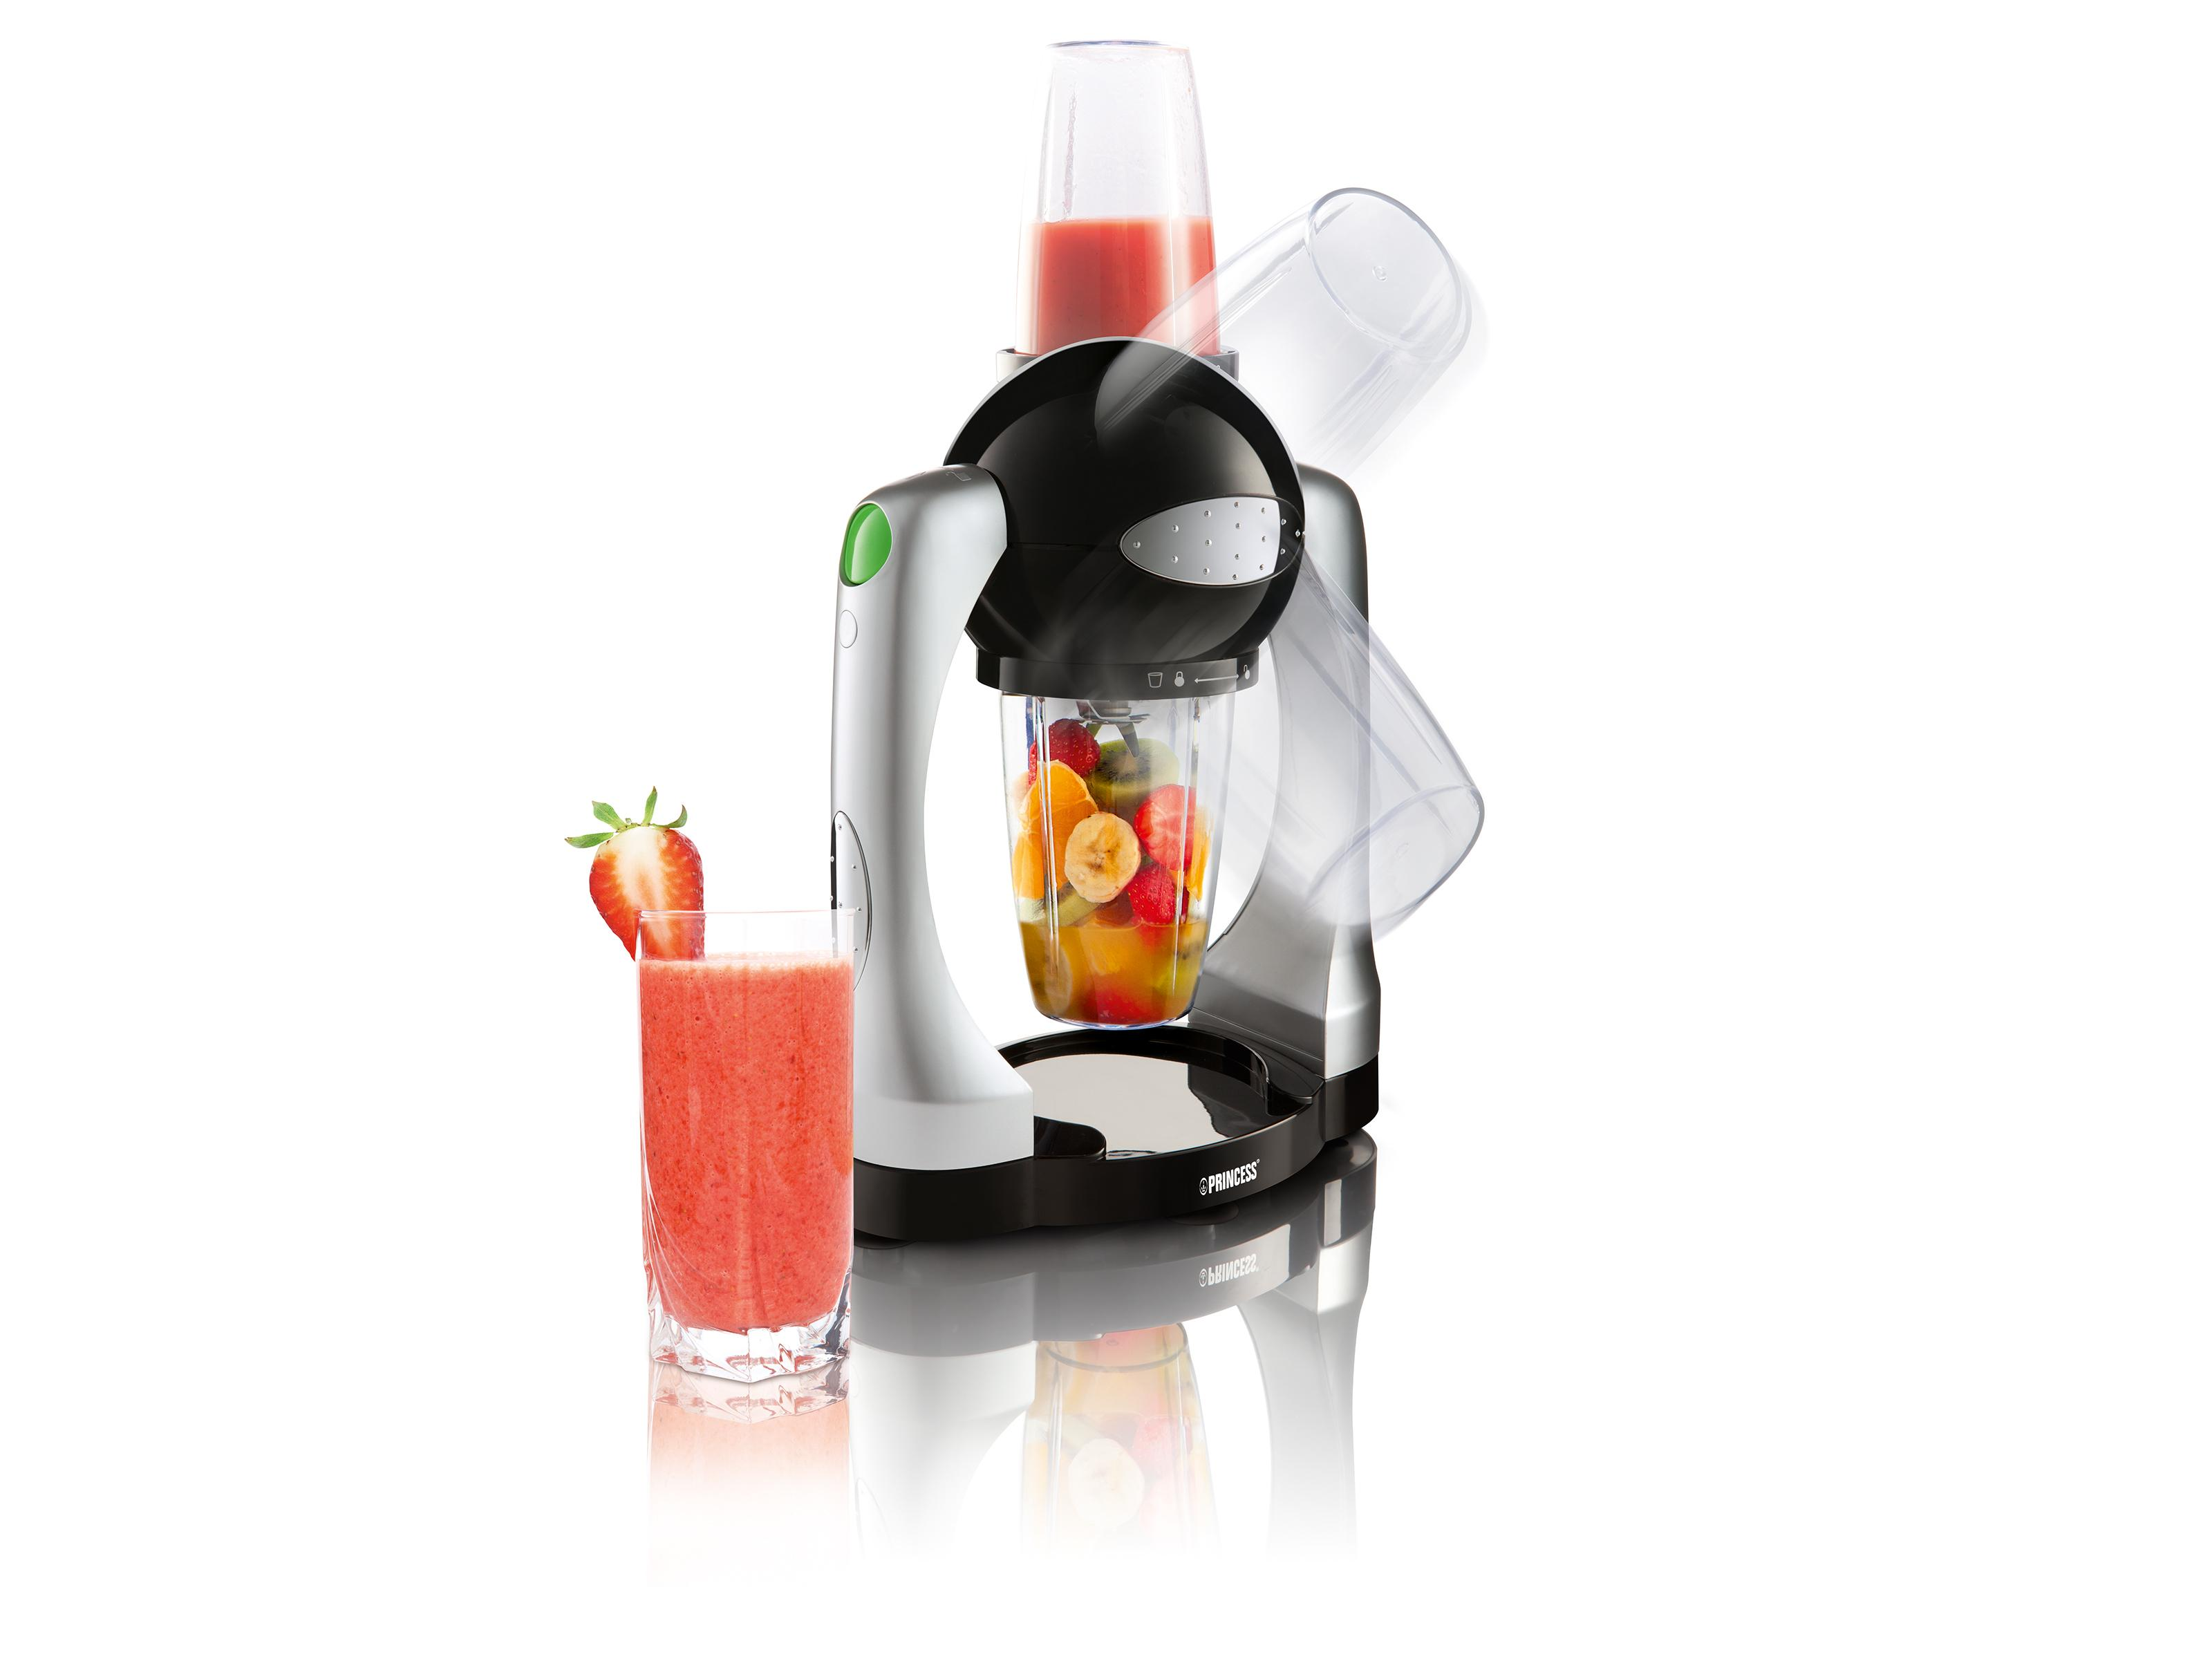 Princess 212063 Batidora para smoothies, potencia turbo, ne